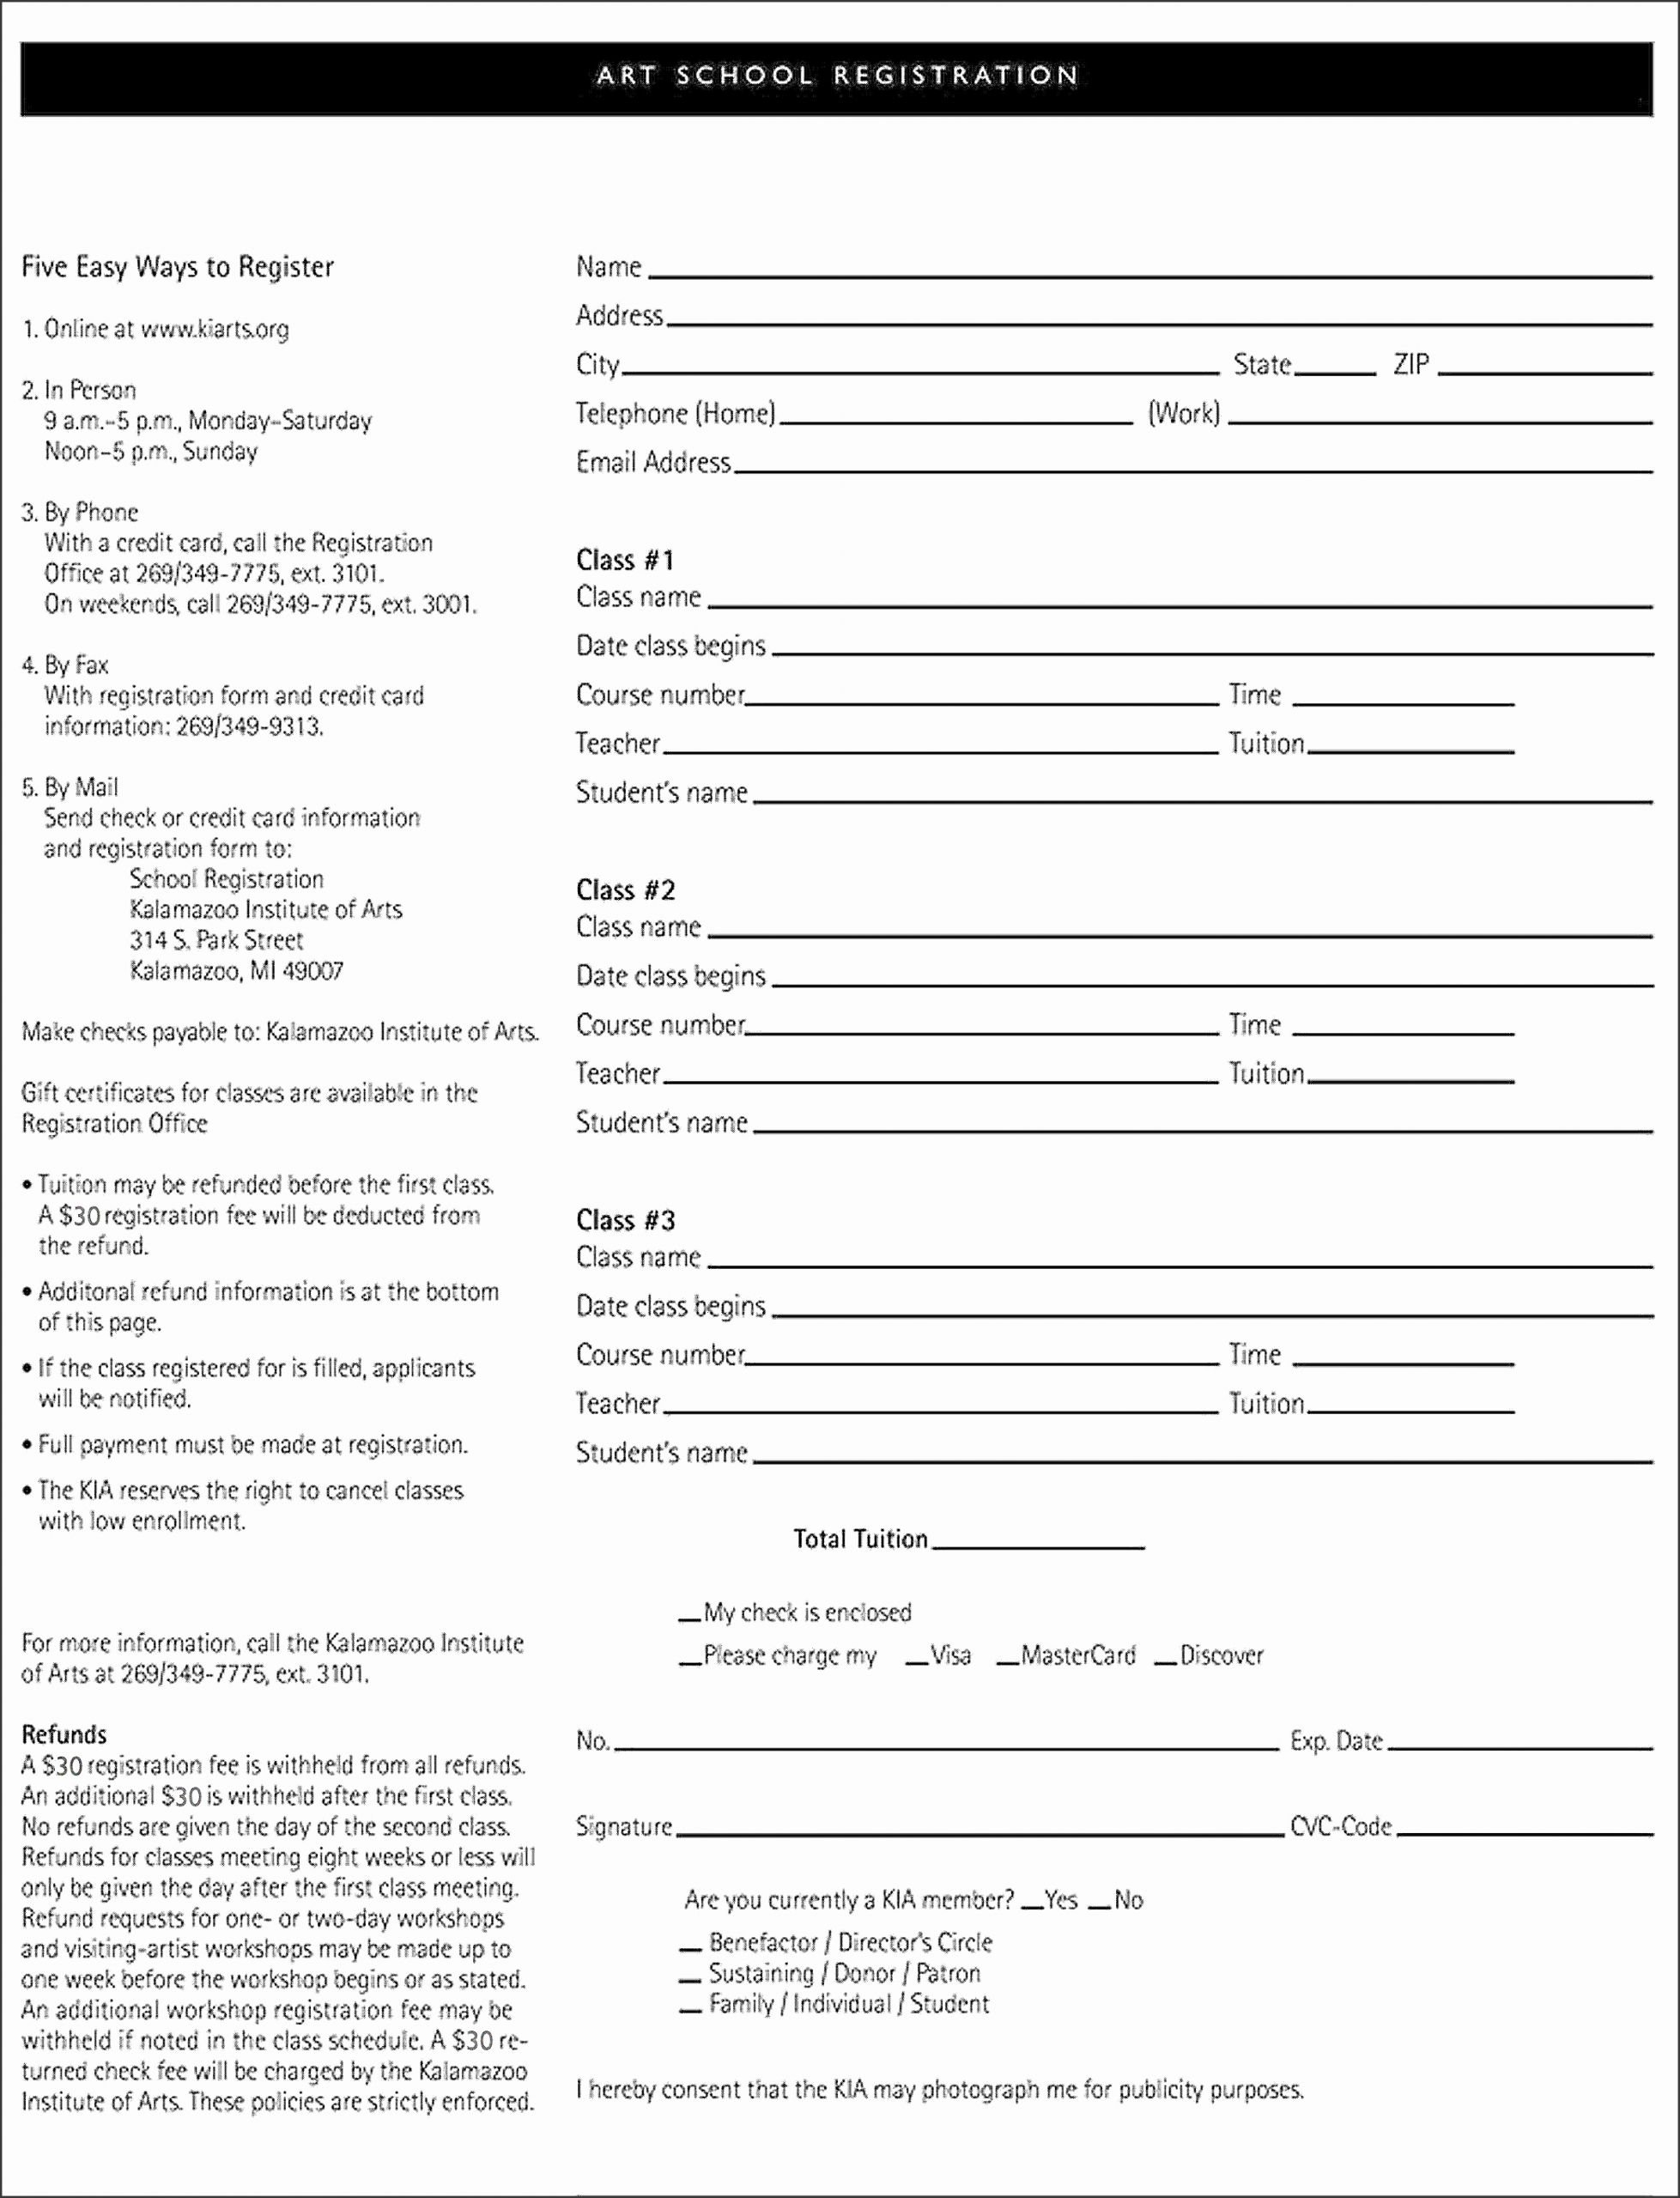 Conference Registration form Template Word New 10 Conference Registration form Template Word